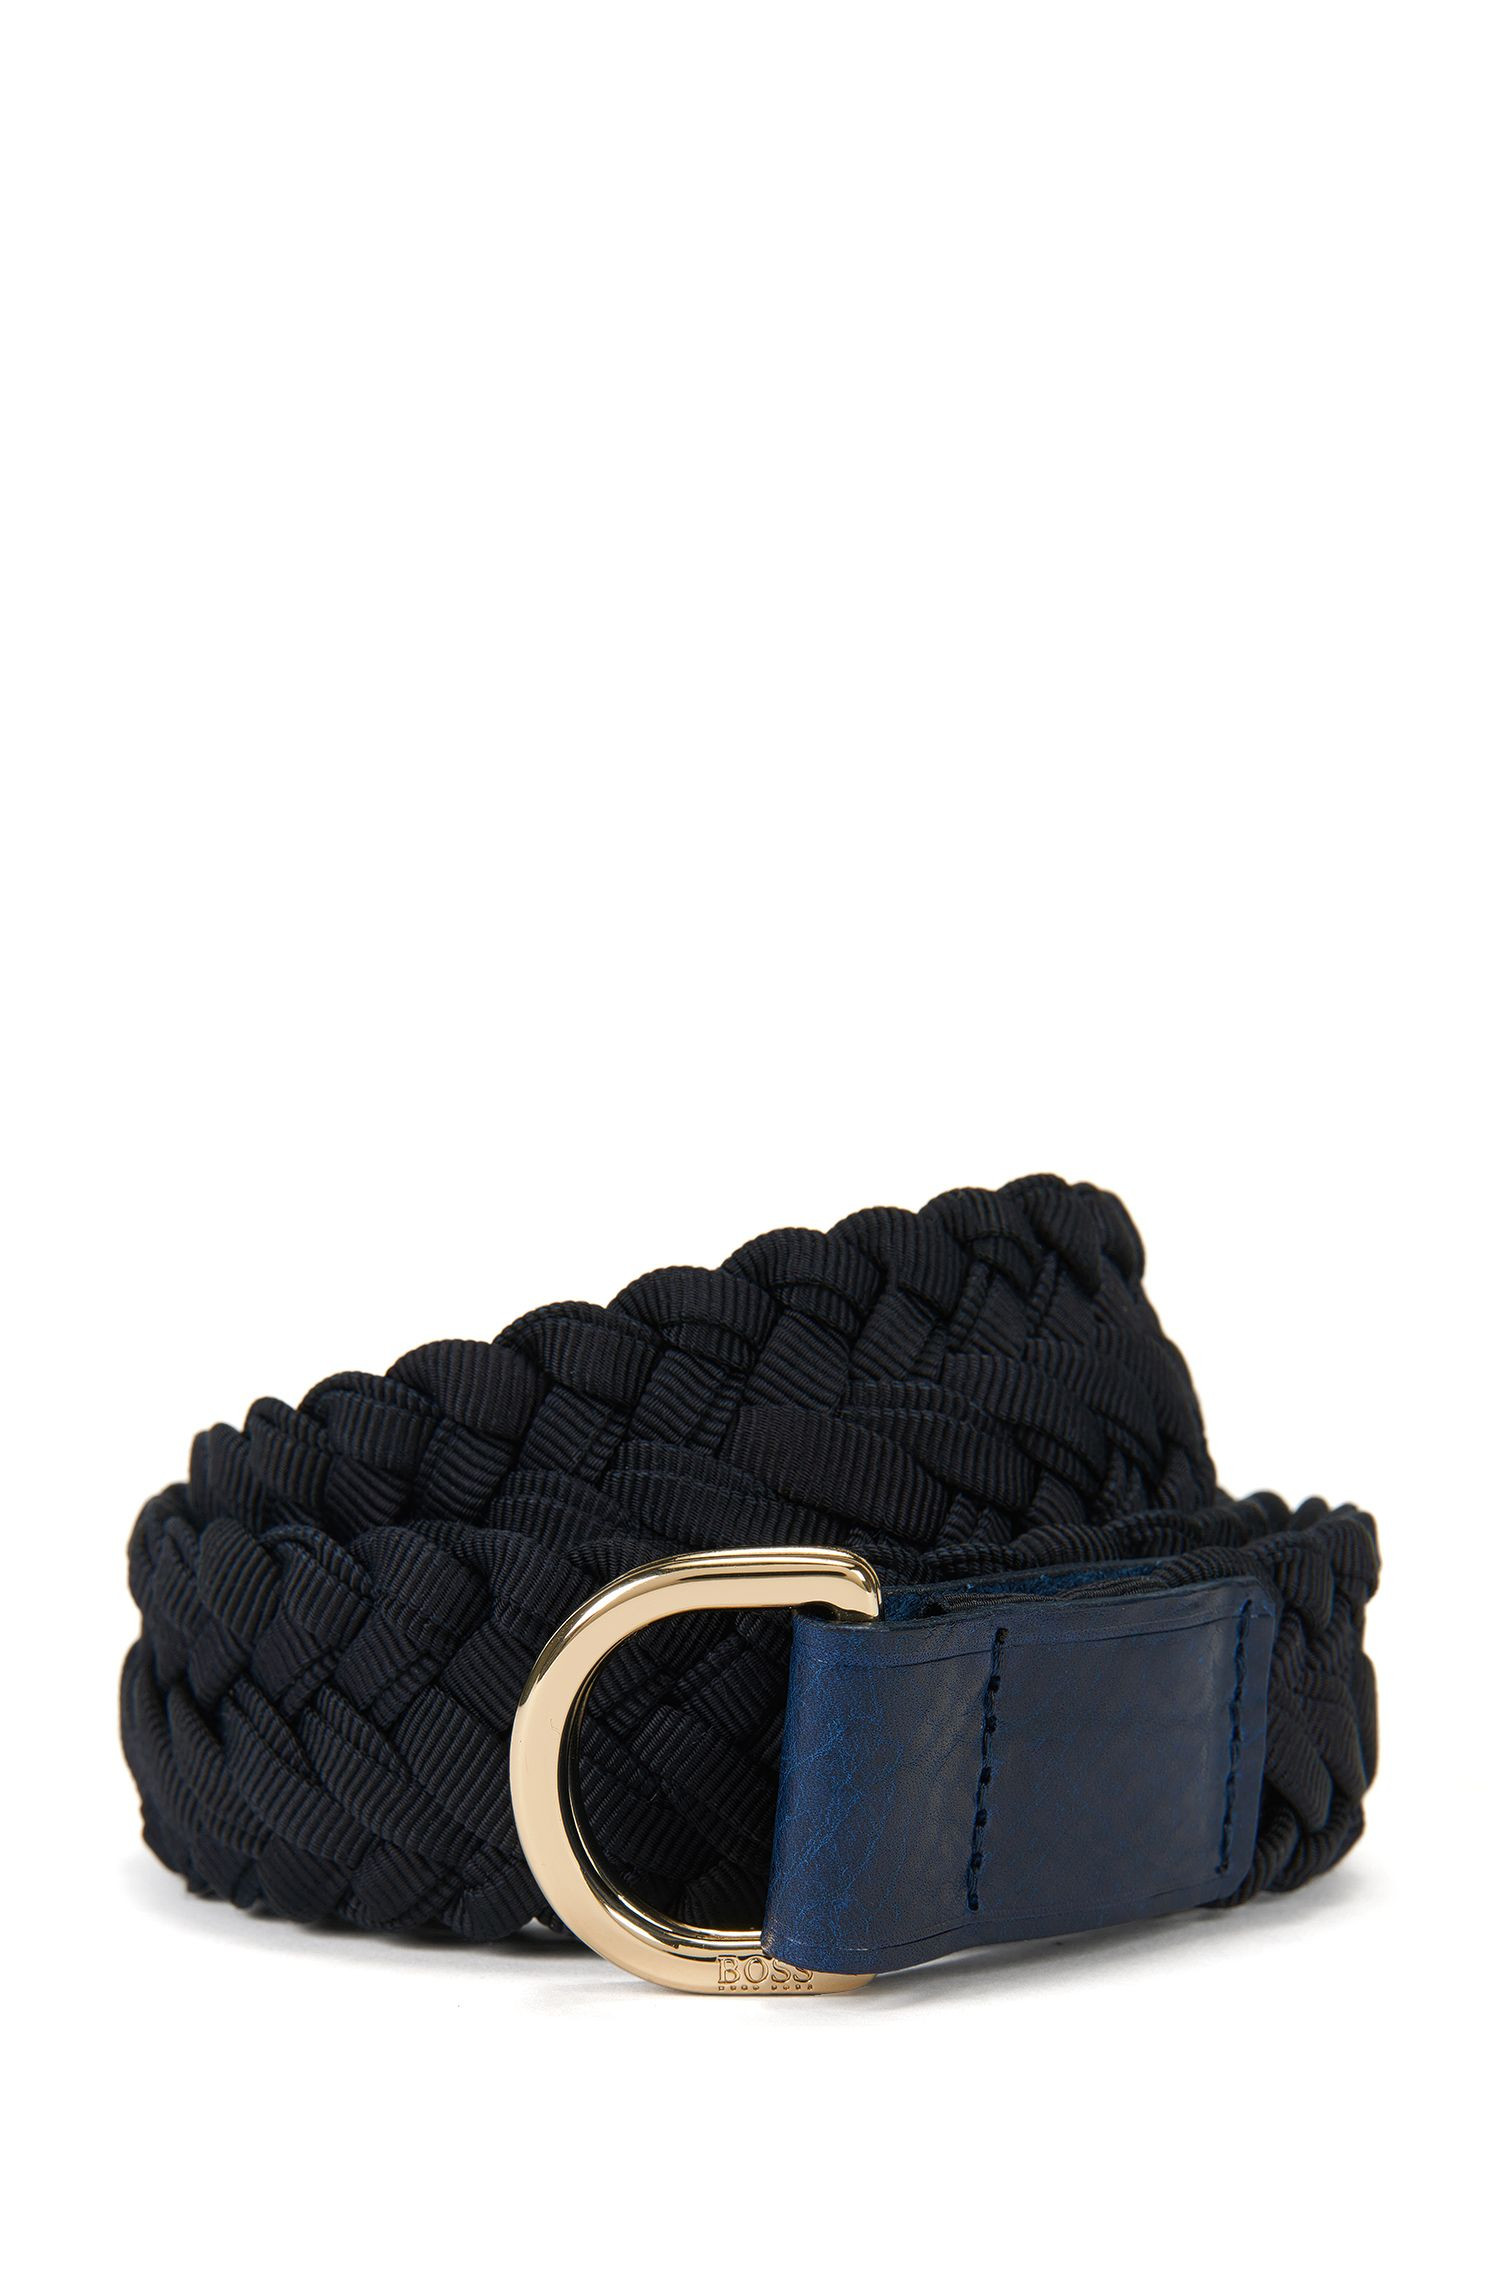 Woven belt with D-ring buckle